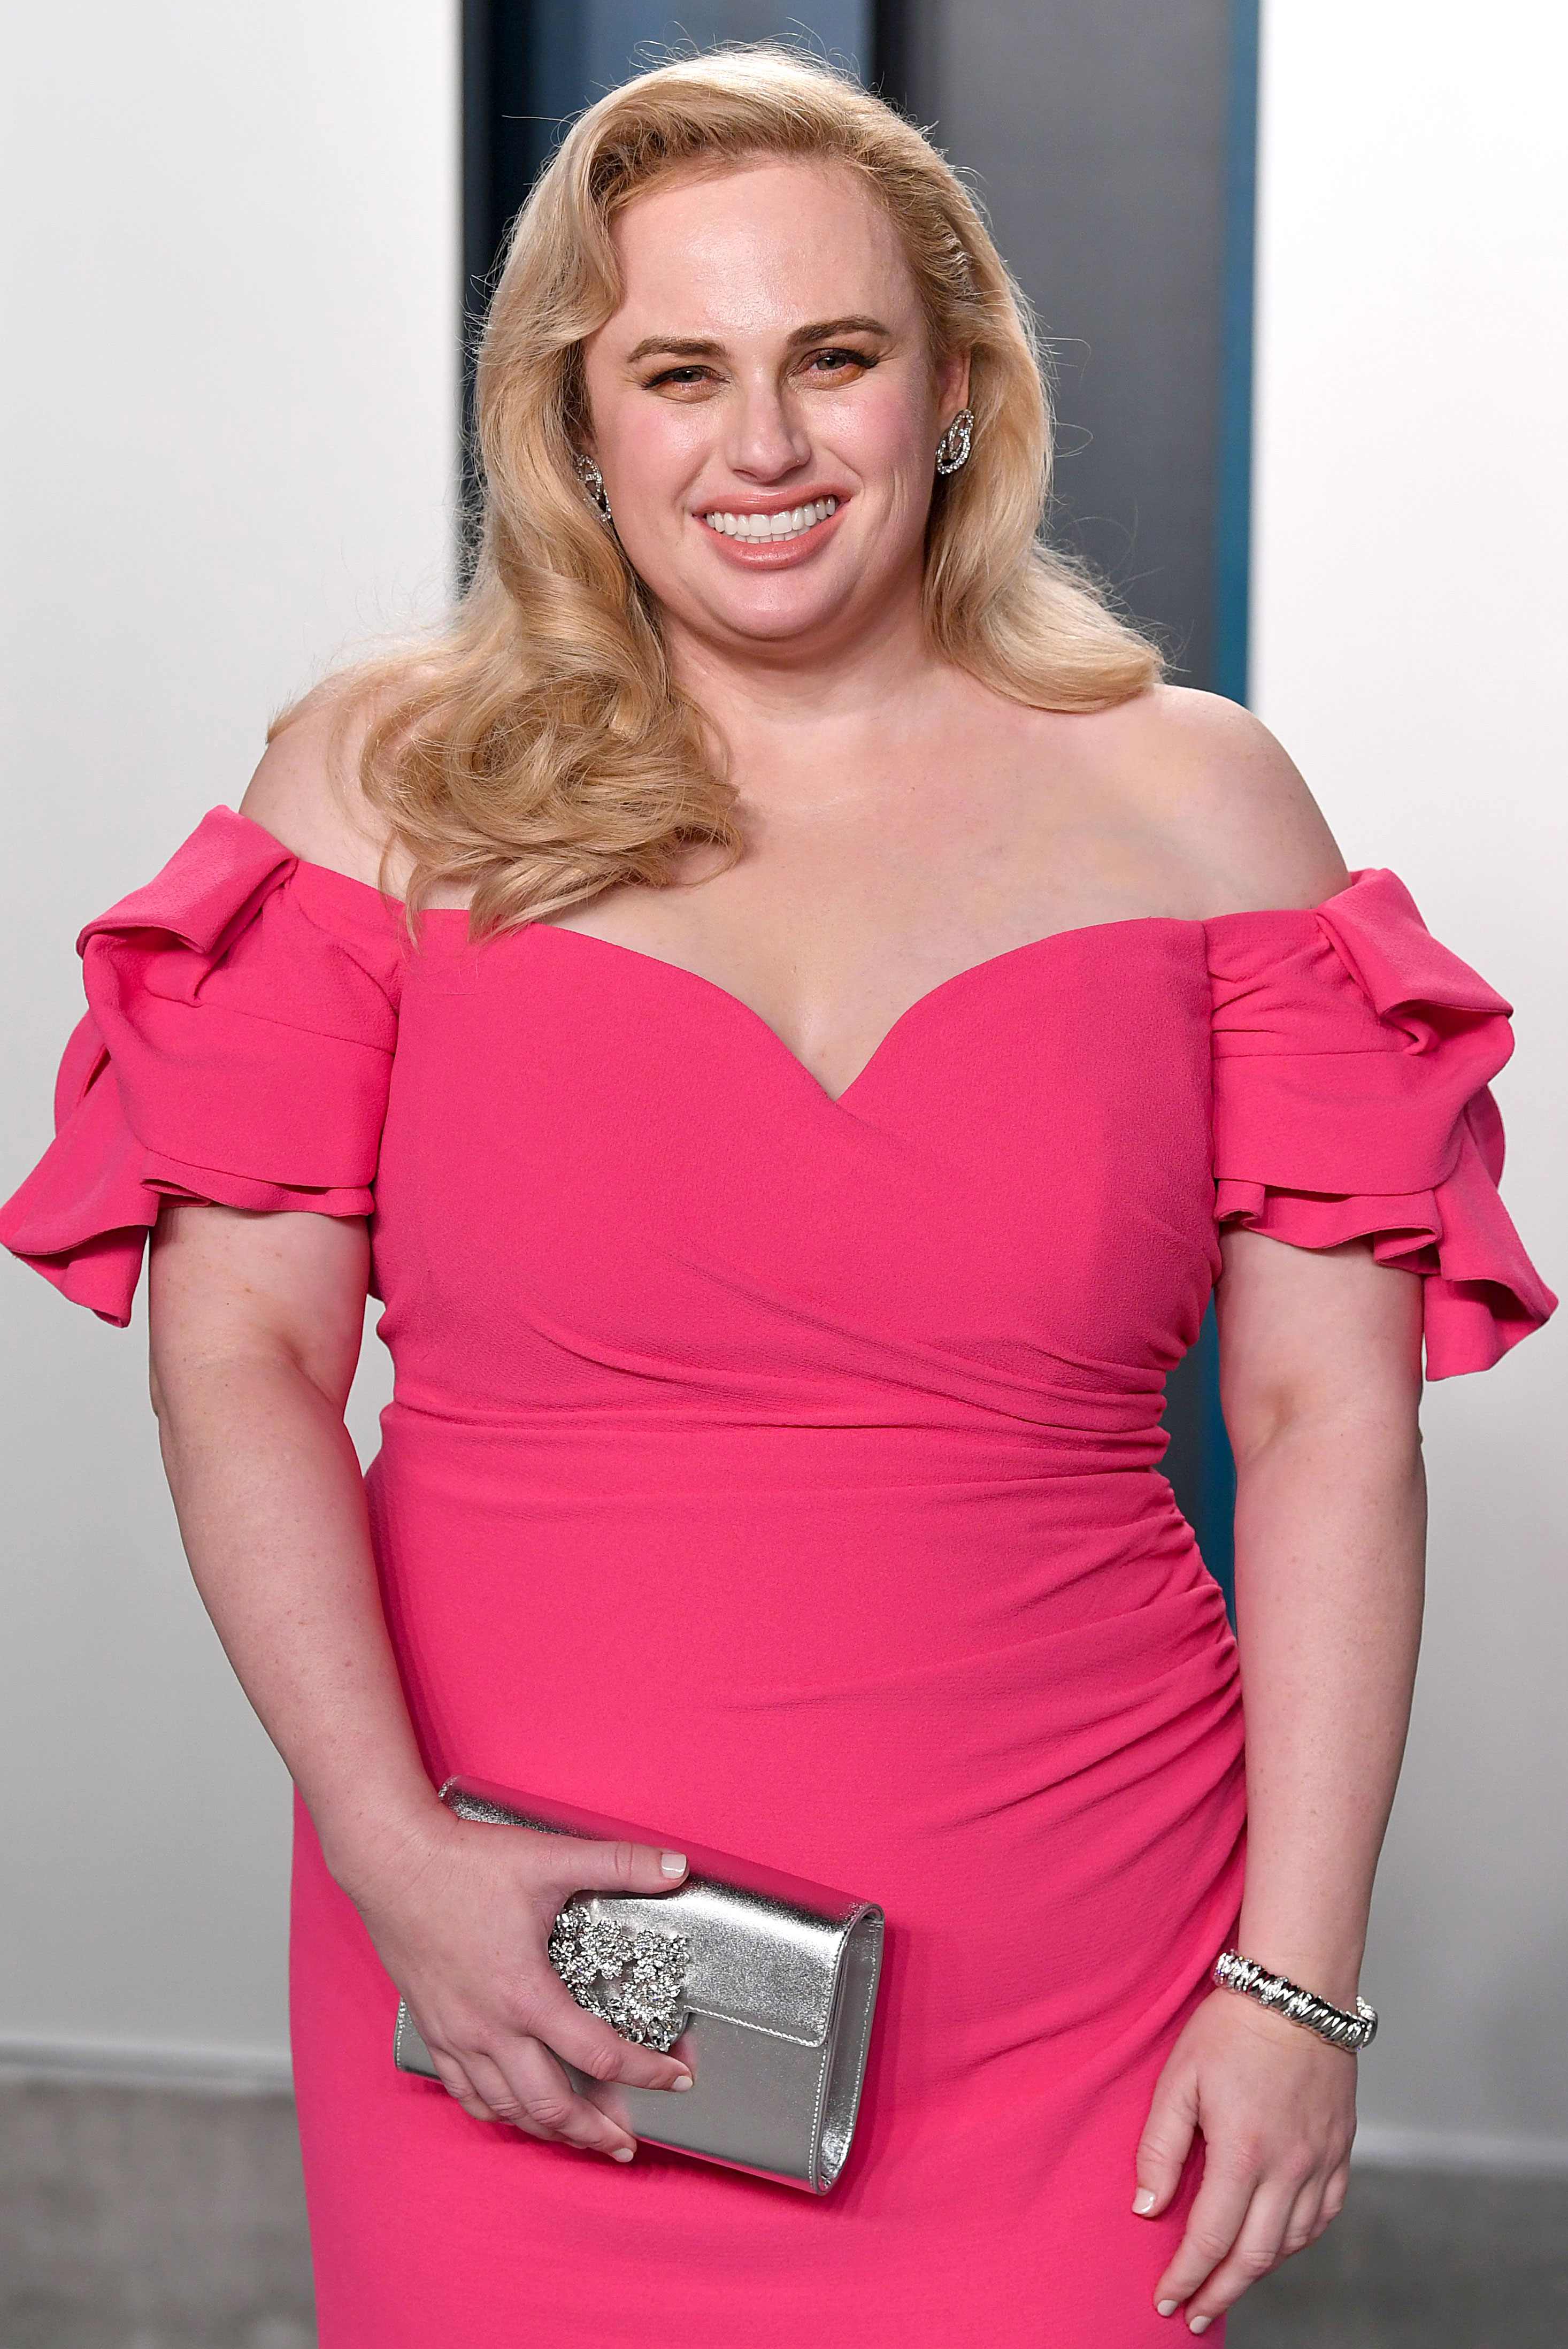 Rebel Wilson Is 17 Lbs Away From Her Goal Weight: What ...